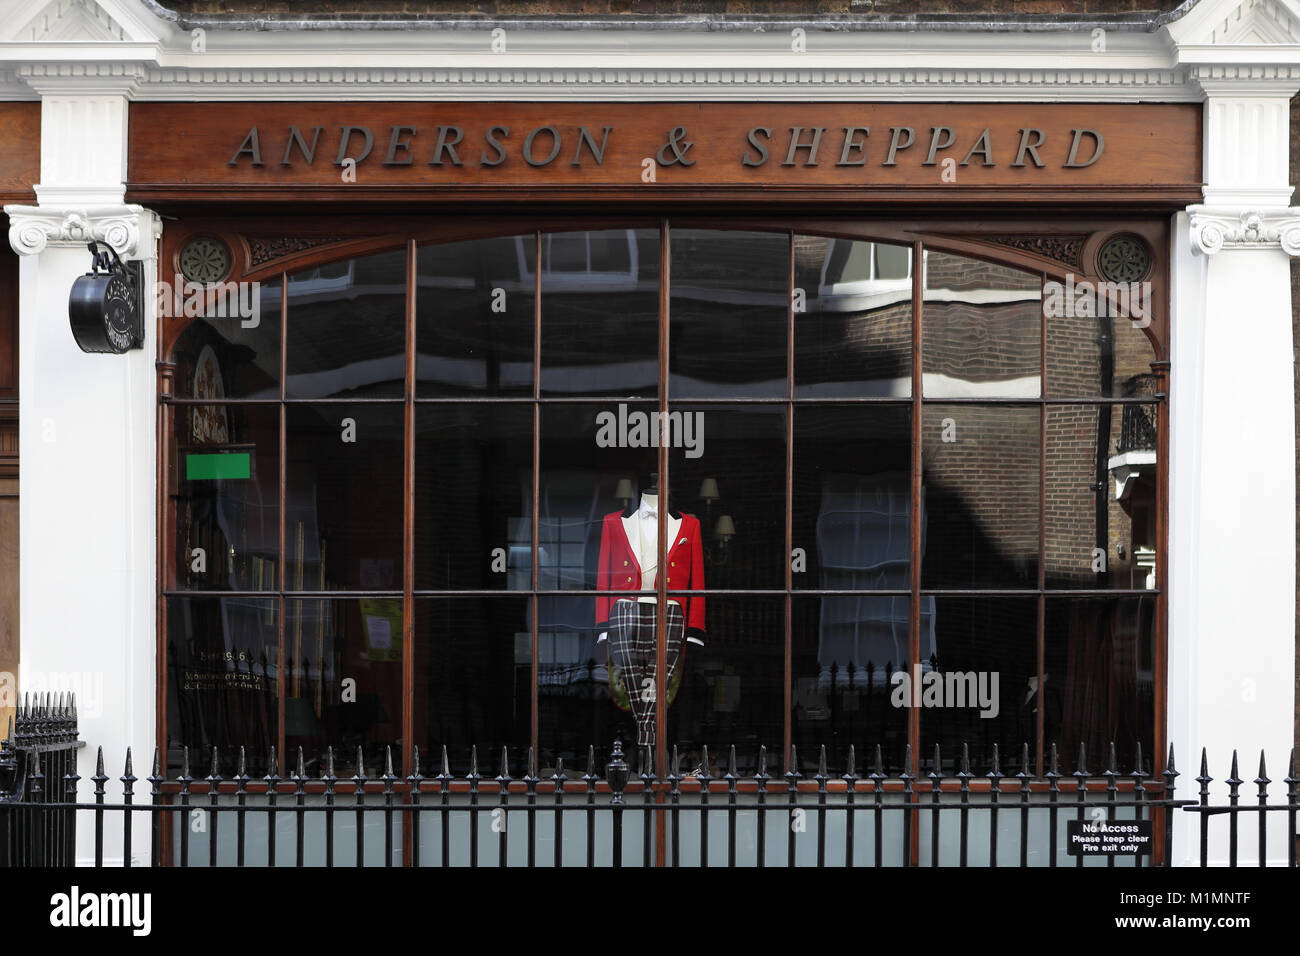 Anderson and Sheppard shop on Savile Row, London, England, Britain - Stock Image